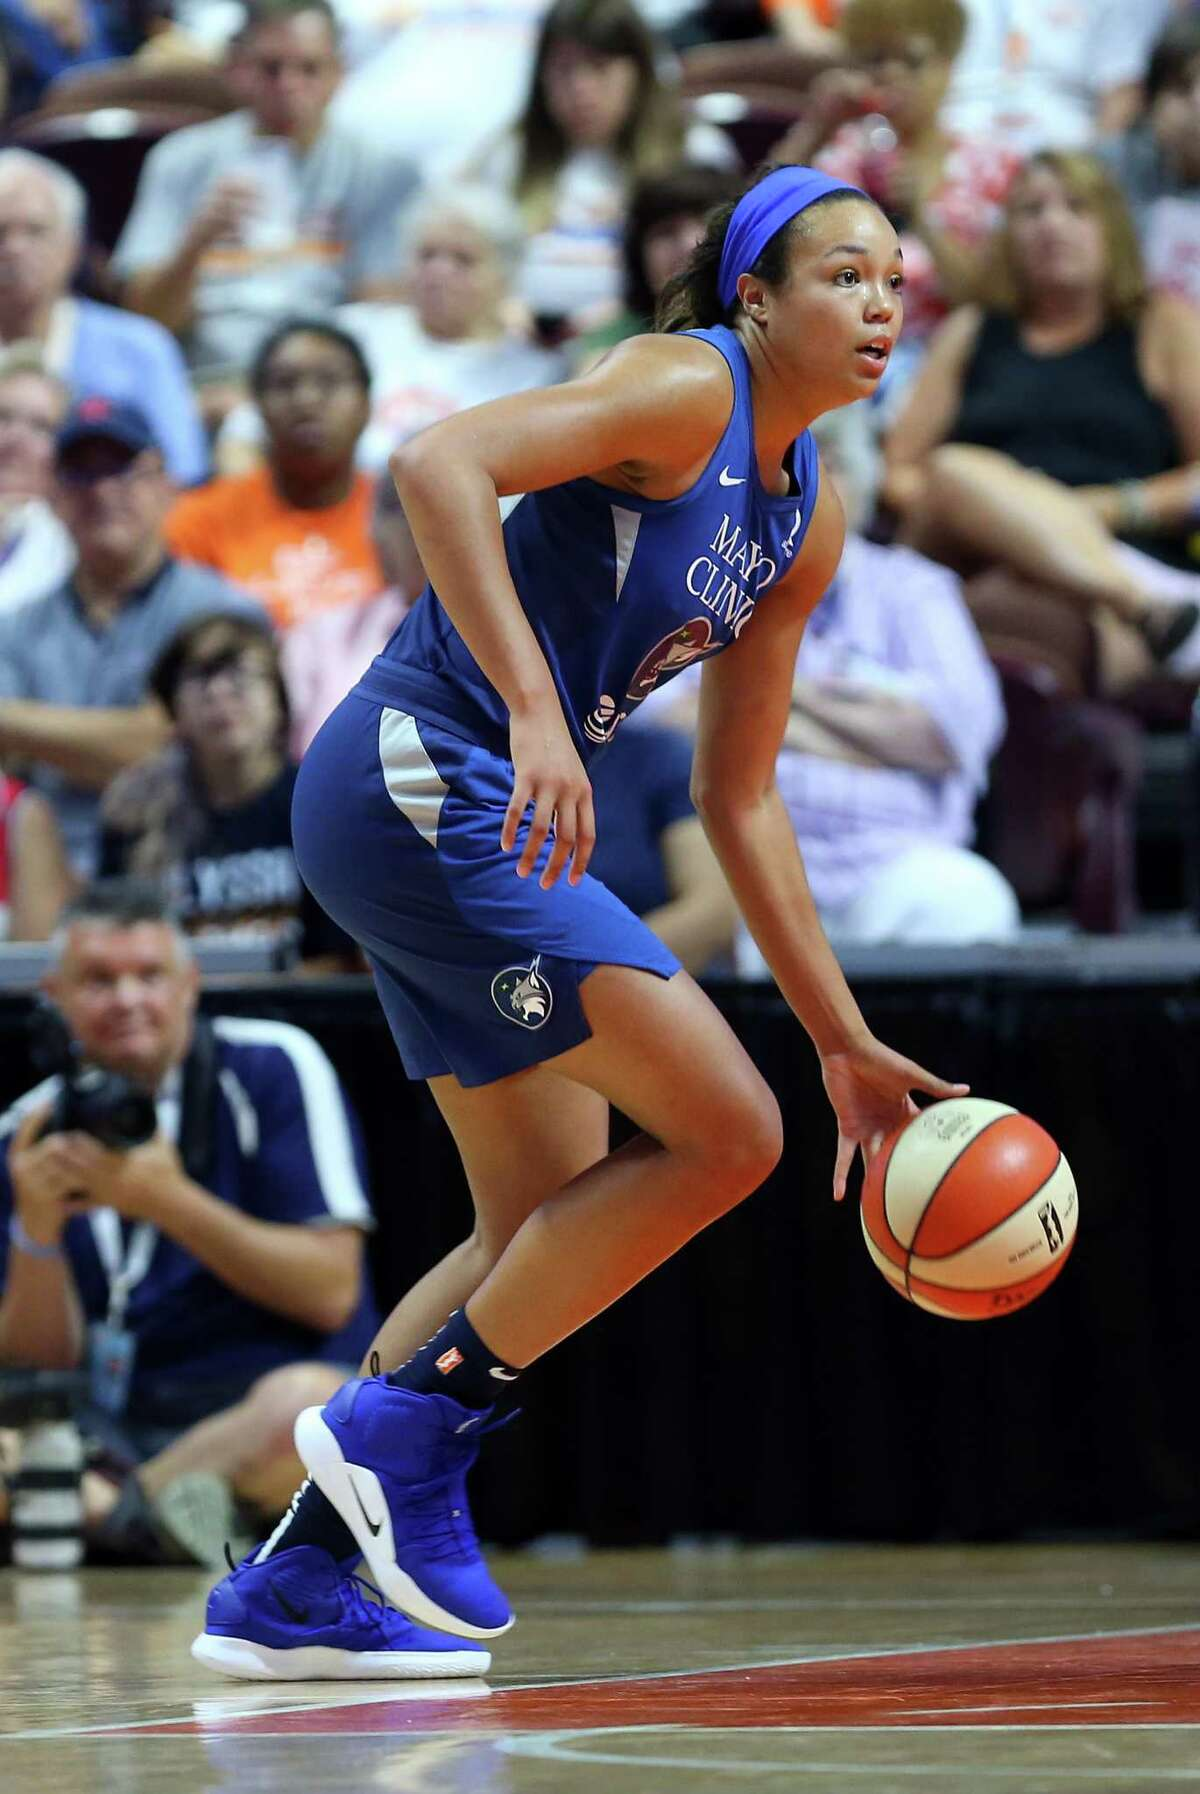 UNCASVILLE, CT - JULY 06: Minnesota Lynx forward Napheesa Collier (24) in action during a WNBA game between Minnesota Lynx and Connecticut Sun on July 6, 2019, at Mohegan Sun Arena in Uncasville, CT. (Photo by M. Anthony Nesmith/Icon Sportswire via Getty Images)